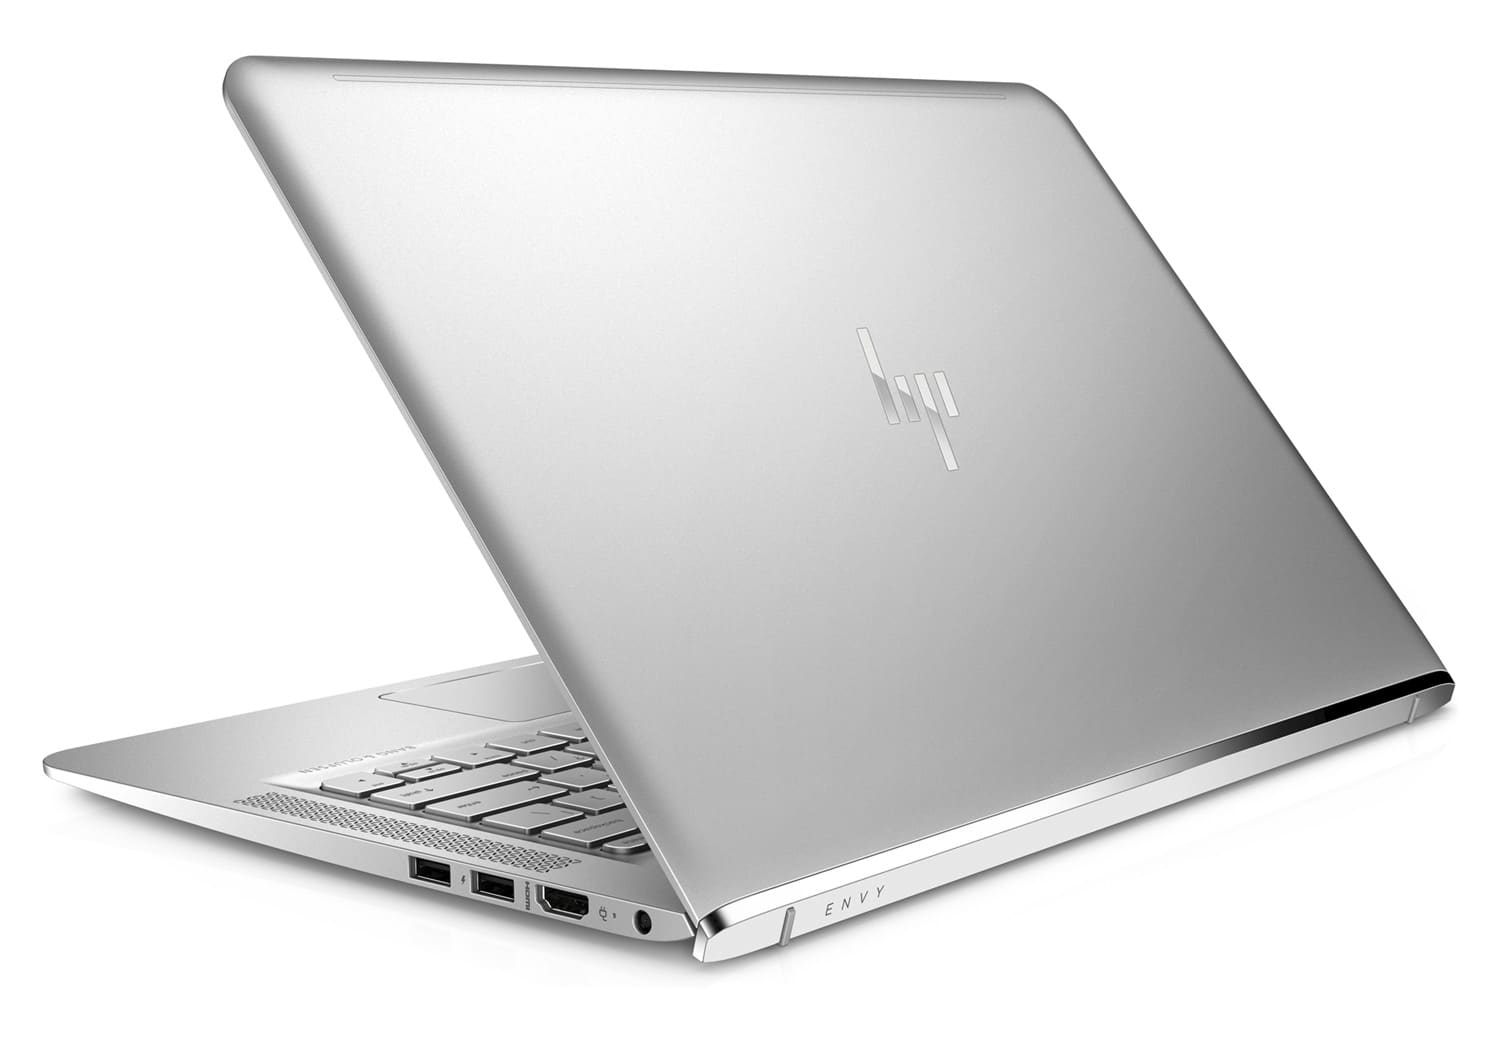 HP Envy 13-ab033nf, Ultrabook 13 pouces IPS QHD+ SSD 1 To i7 Kaby 16 Go 1599€